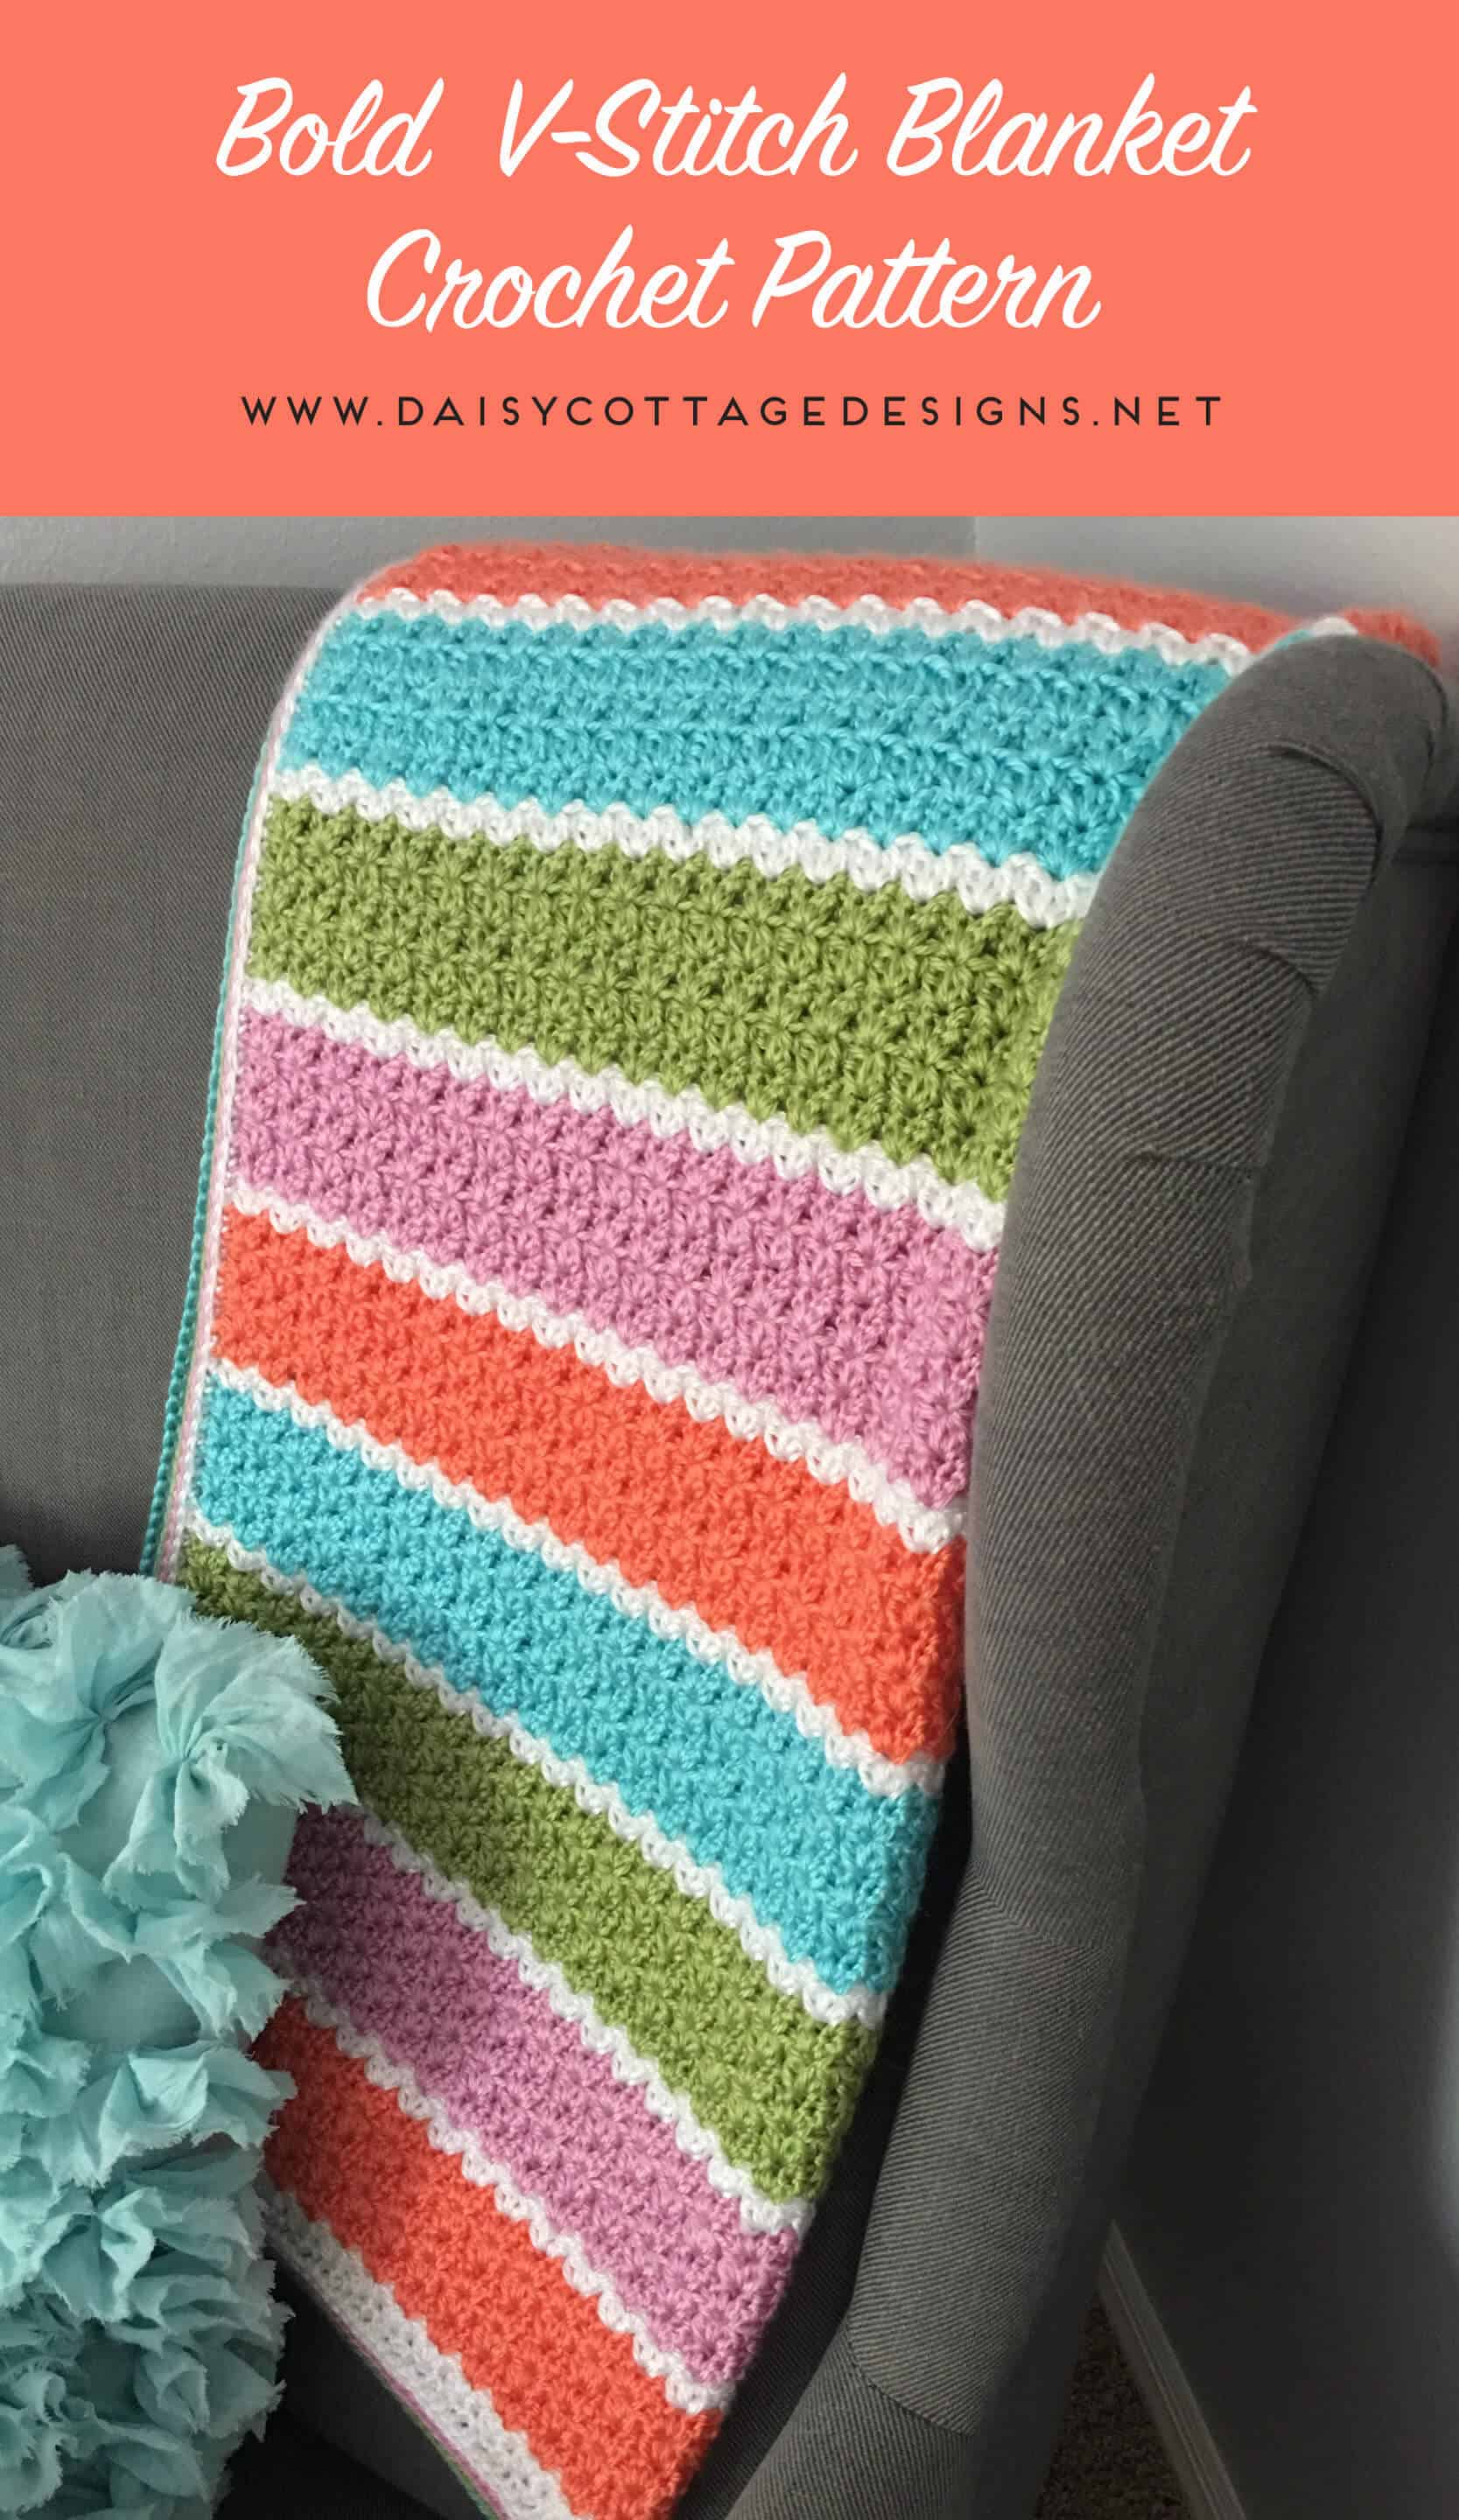 V stitch blanket crochet pattern daisy cottage designs if youre looking for a free crochet blanket pattern that works up quickly bankloansurffo Images